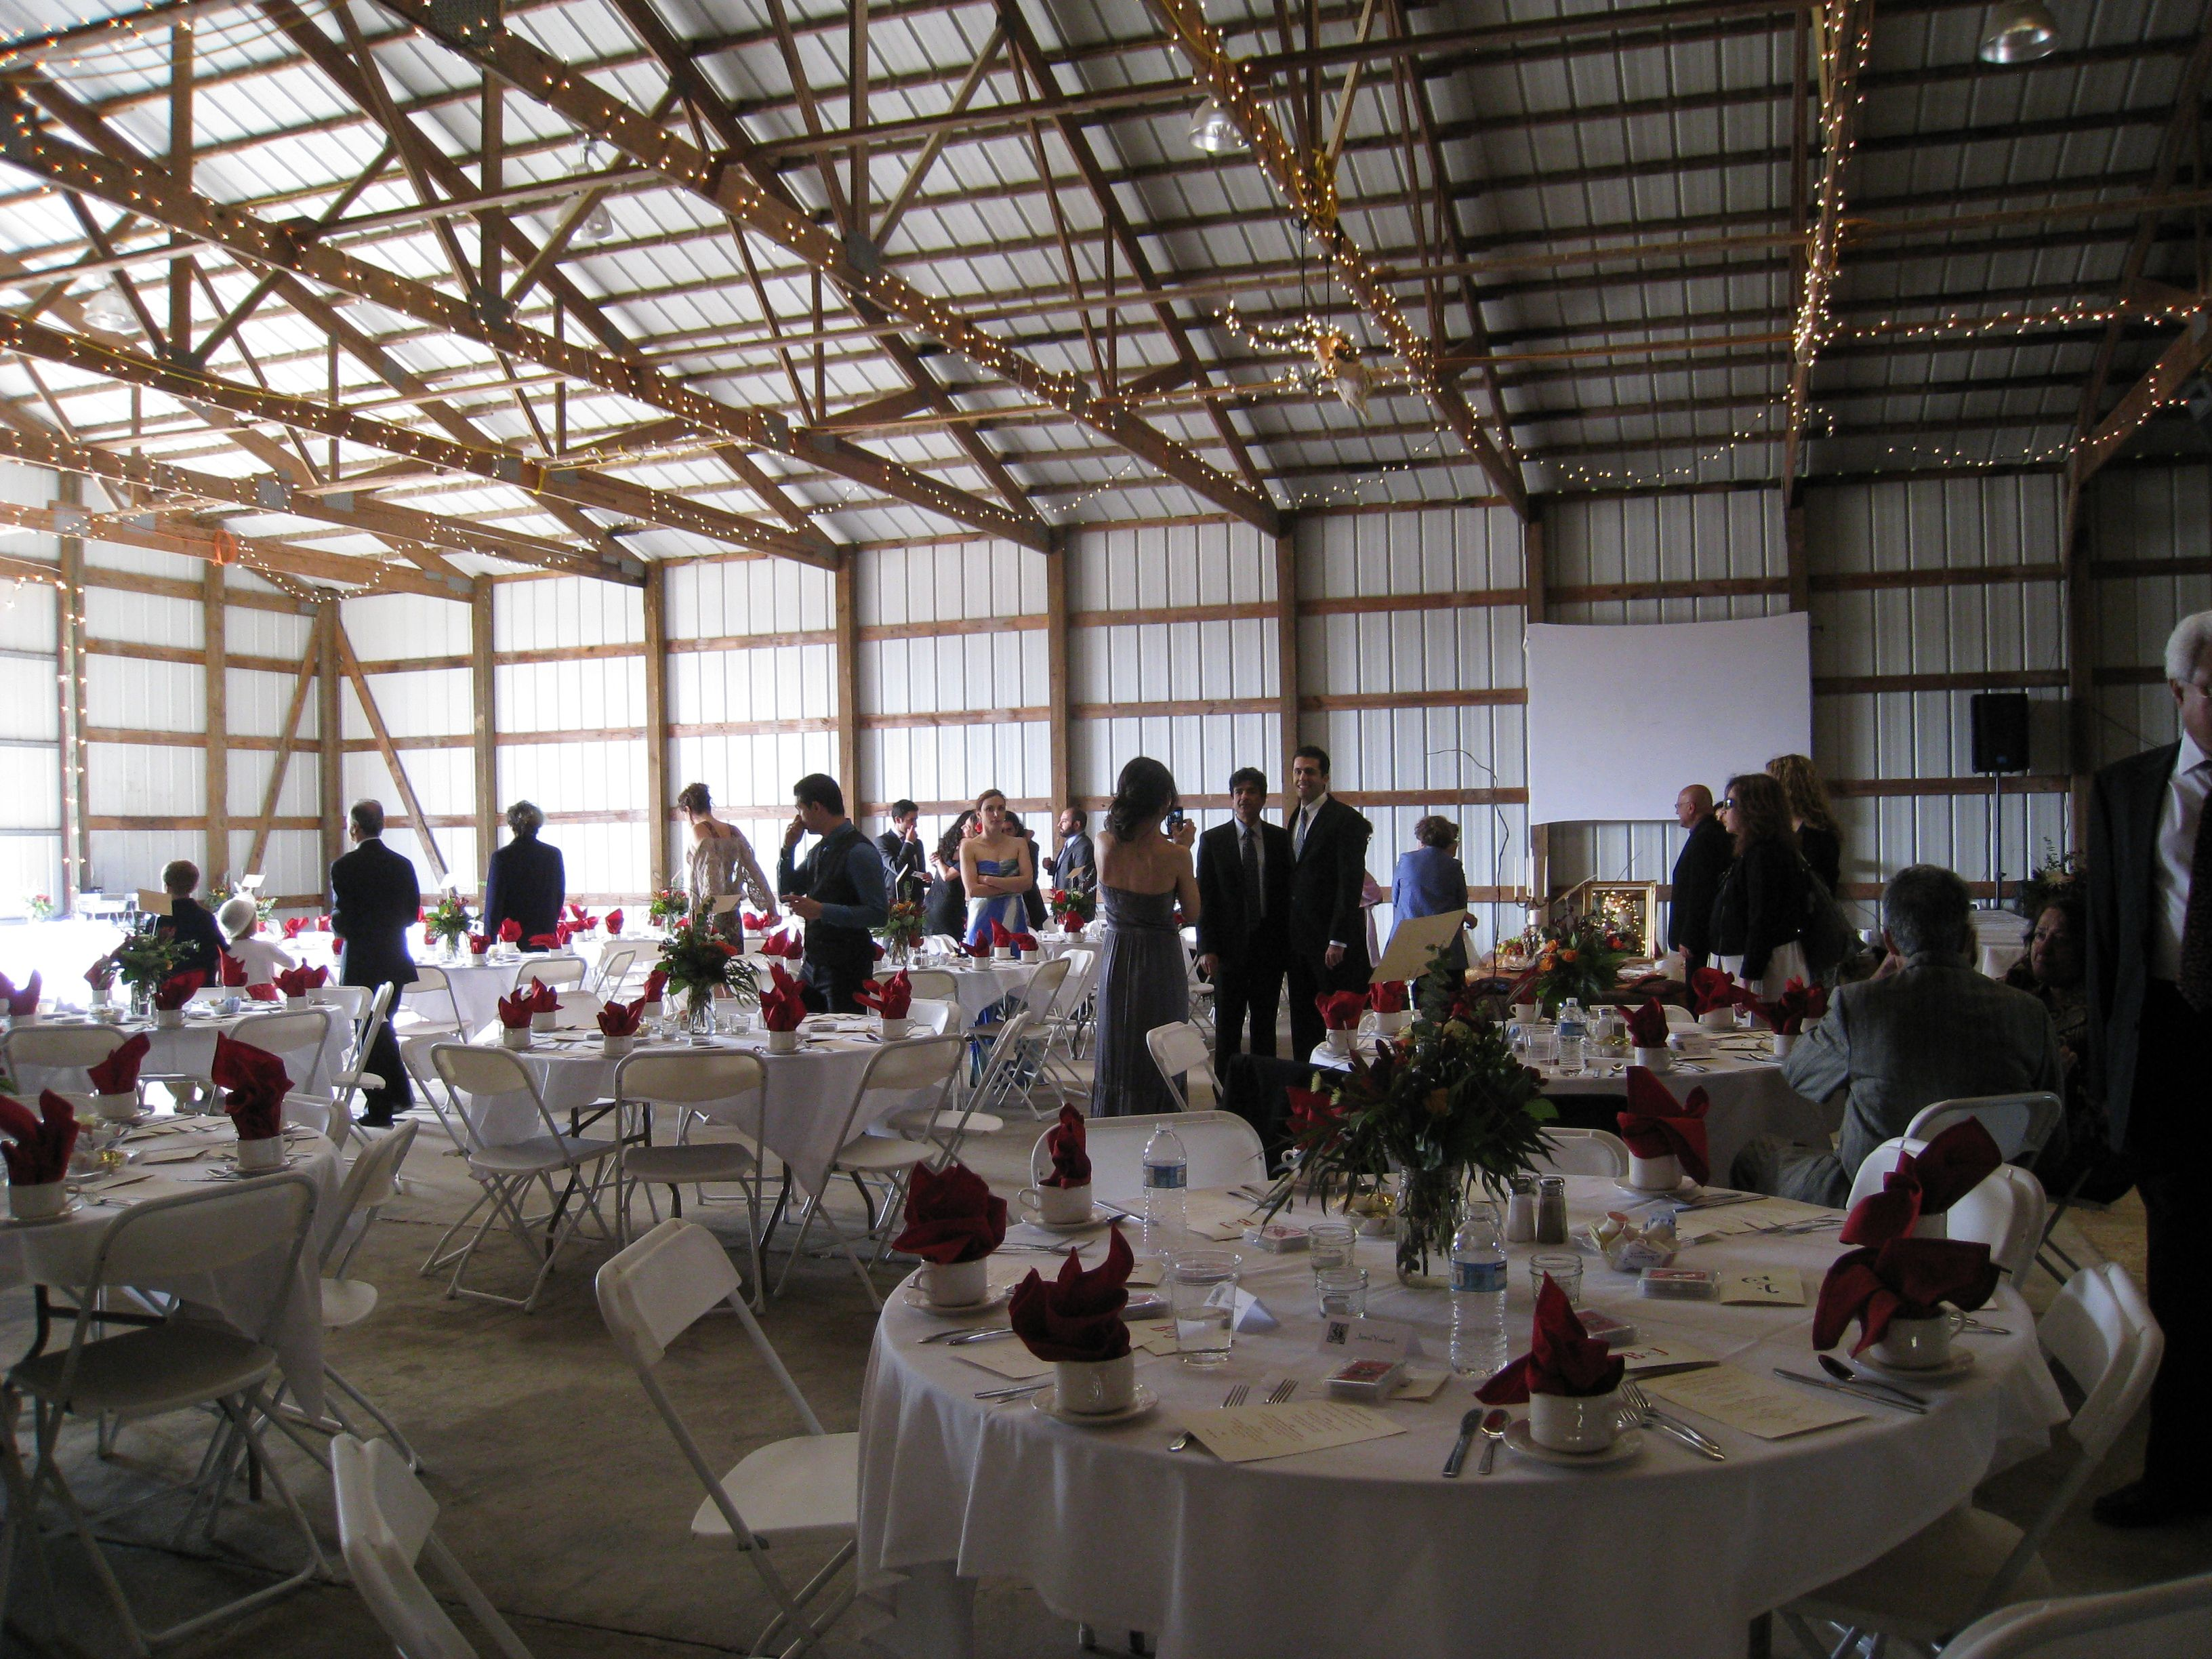 barn wedding venues twin cities%0A Great for a back up plan for rainy outdoor weddings at the gazebo farm  wedding